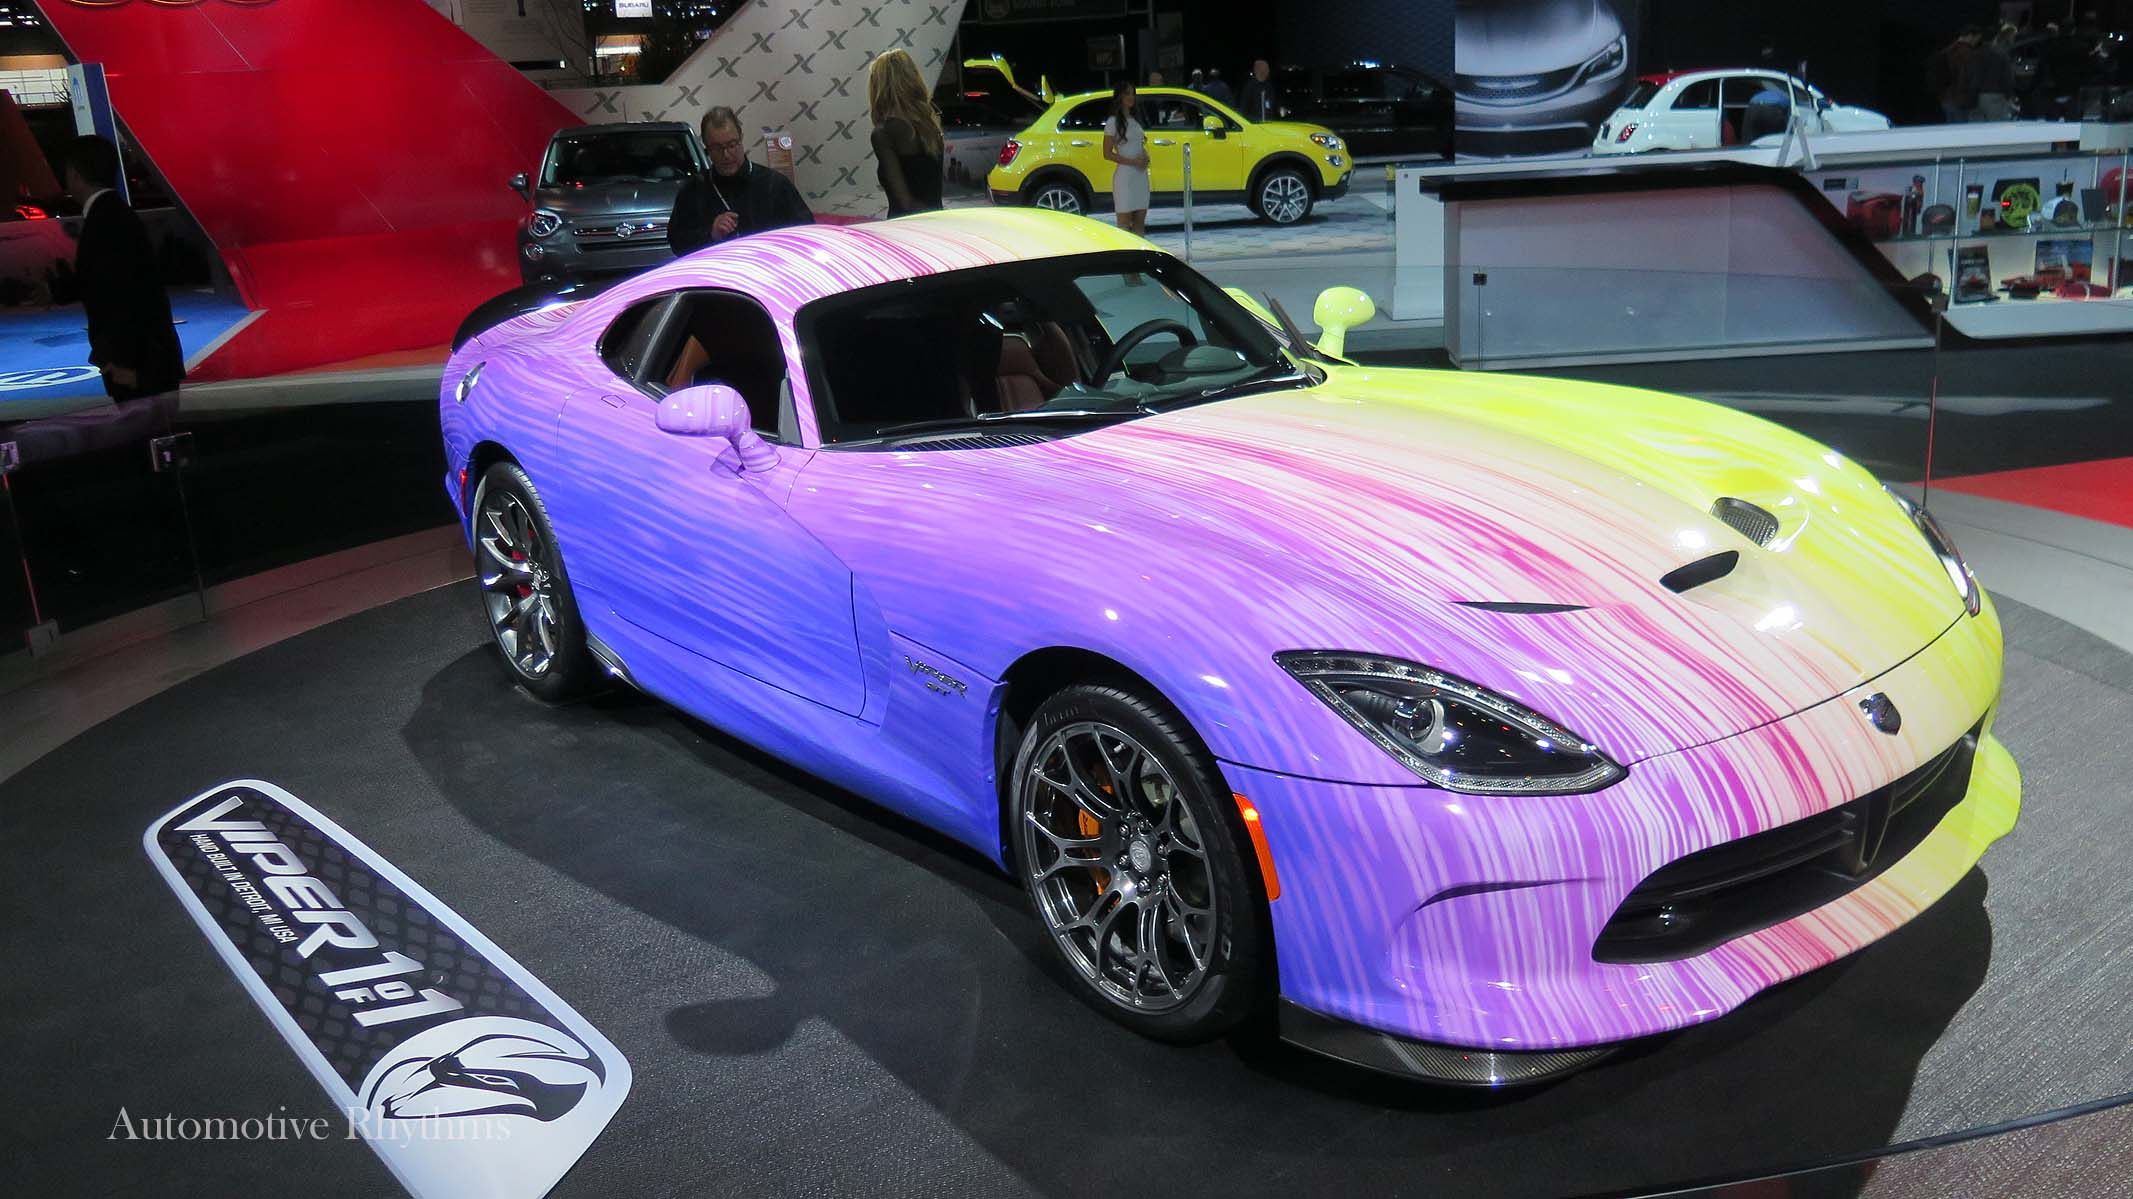 Washington Auto Show To Feature ARTofMotion A Visual Art And - Washington car show